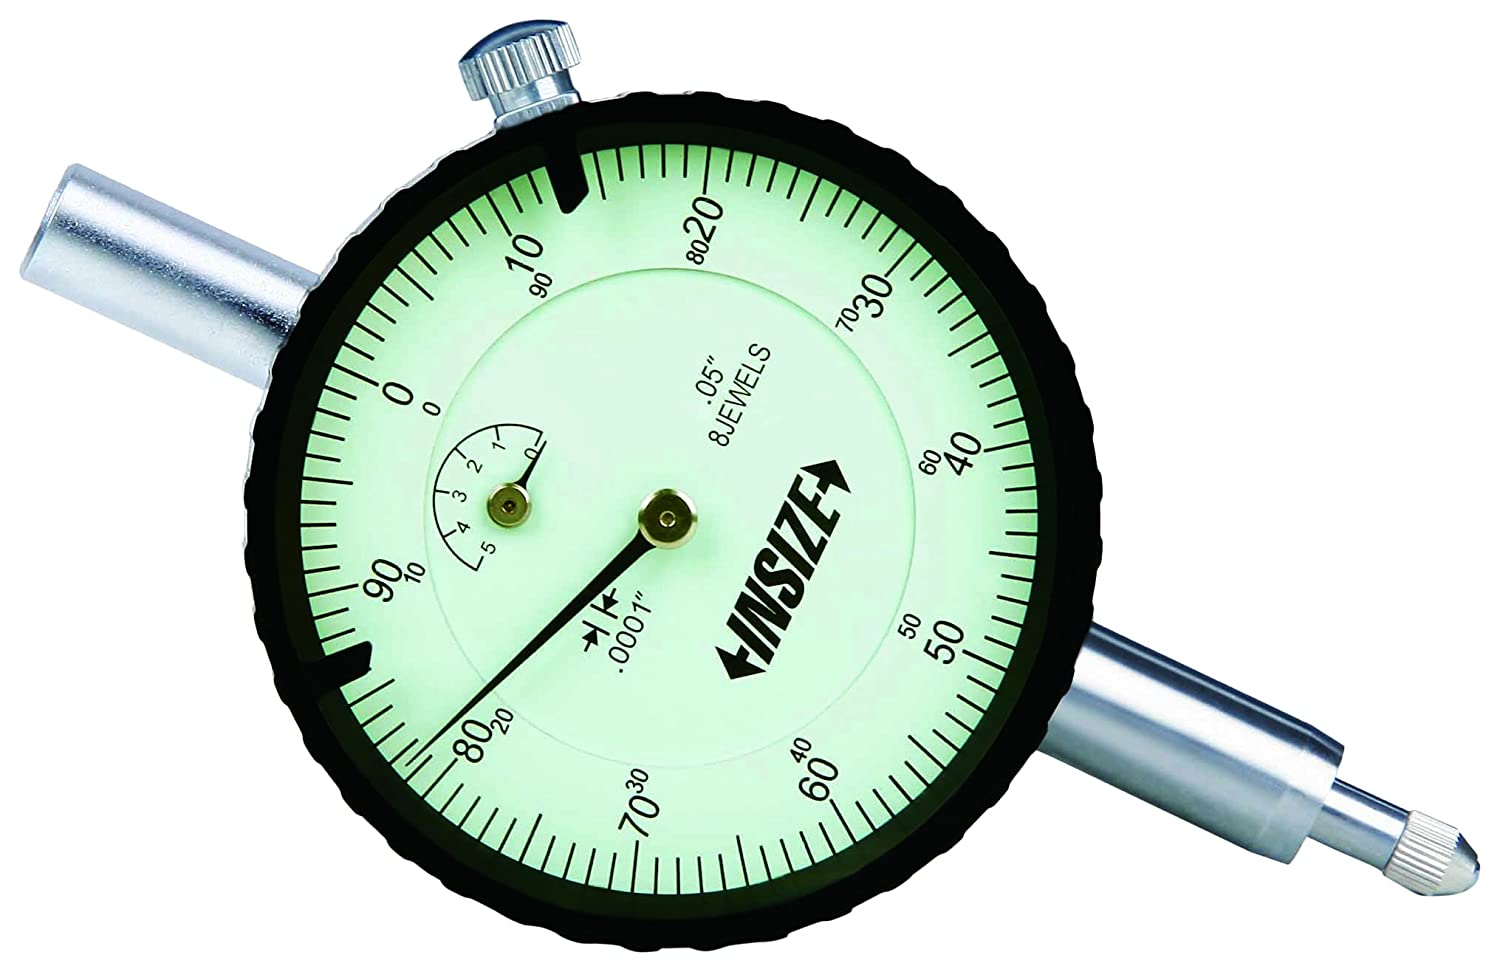 INSIZE 2380-35 DIAL TEST INDICATOR 0.03 INCHES RES 0.0005 INCHES